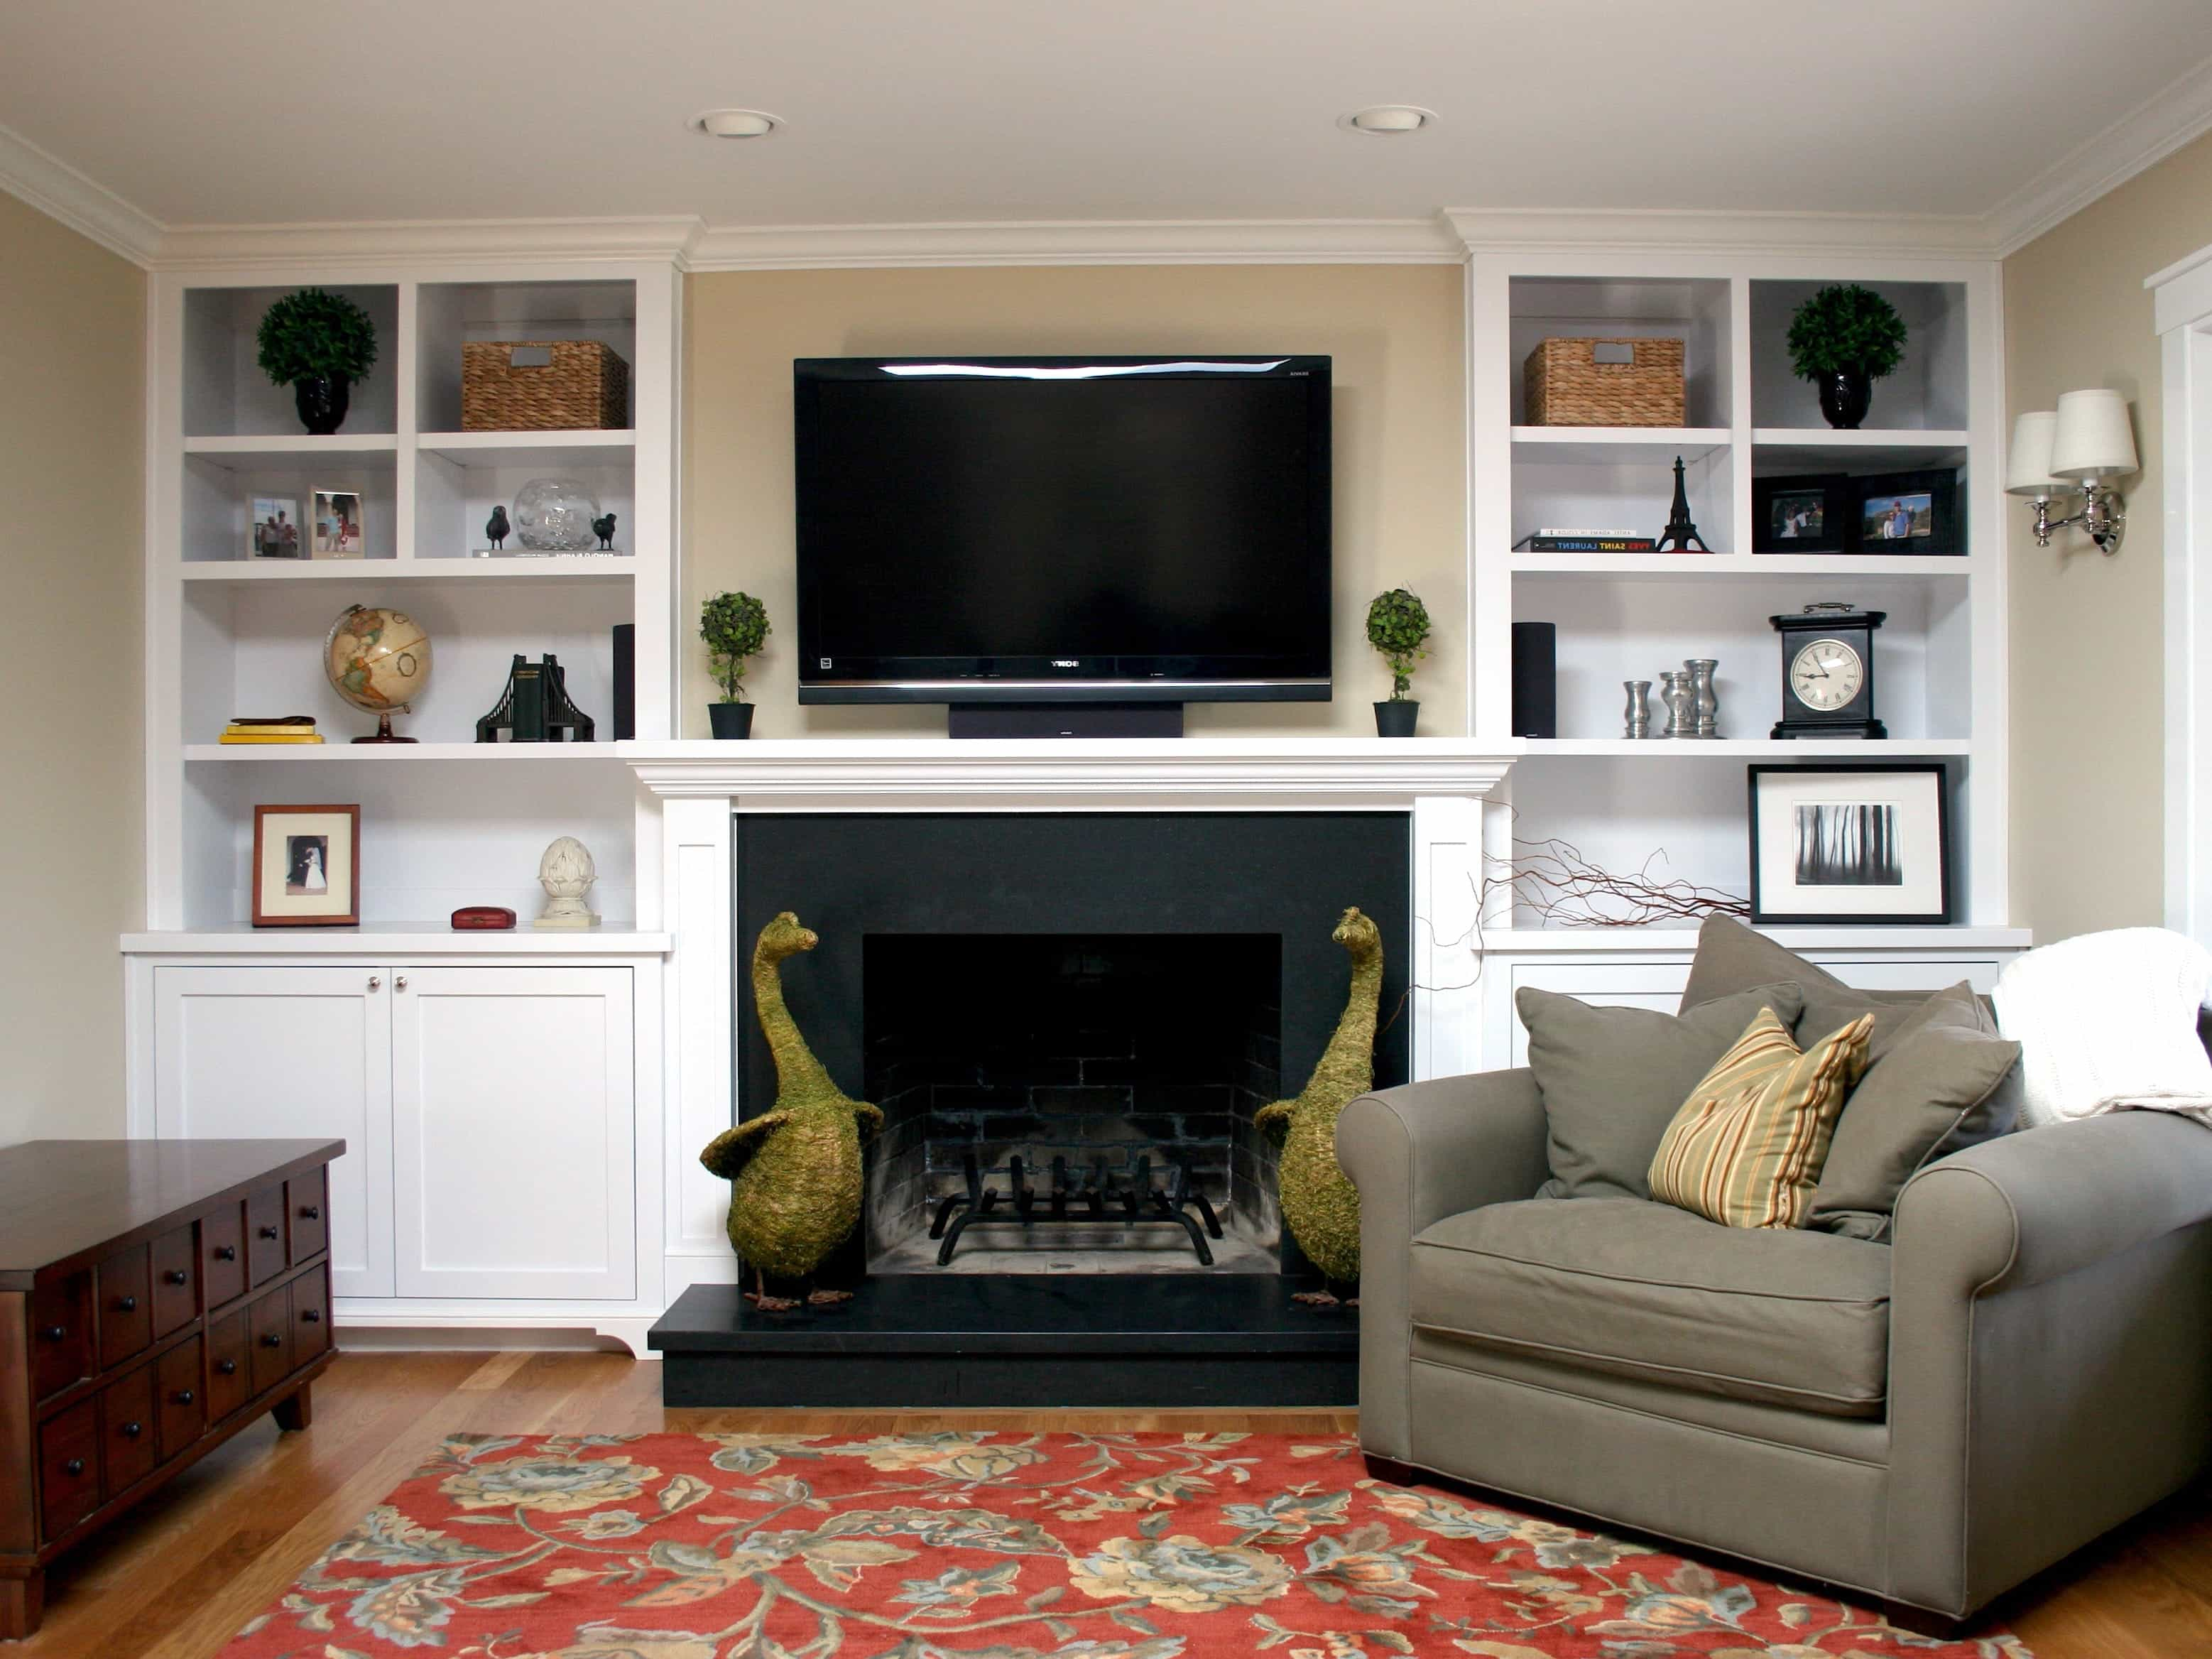 Built In Bookcases And Fireplace In Transitional Living Room (View 17 of 29)